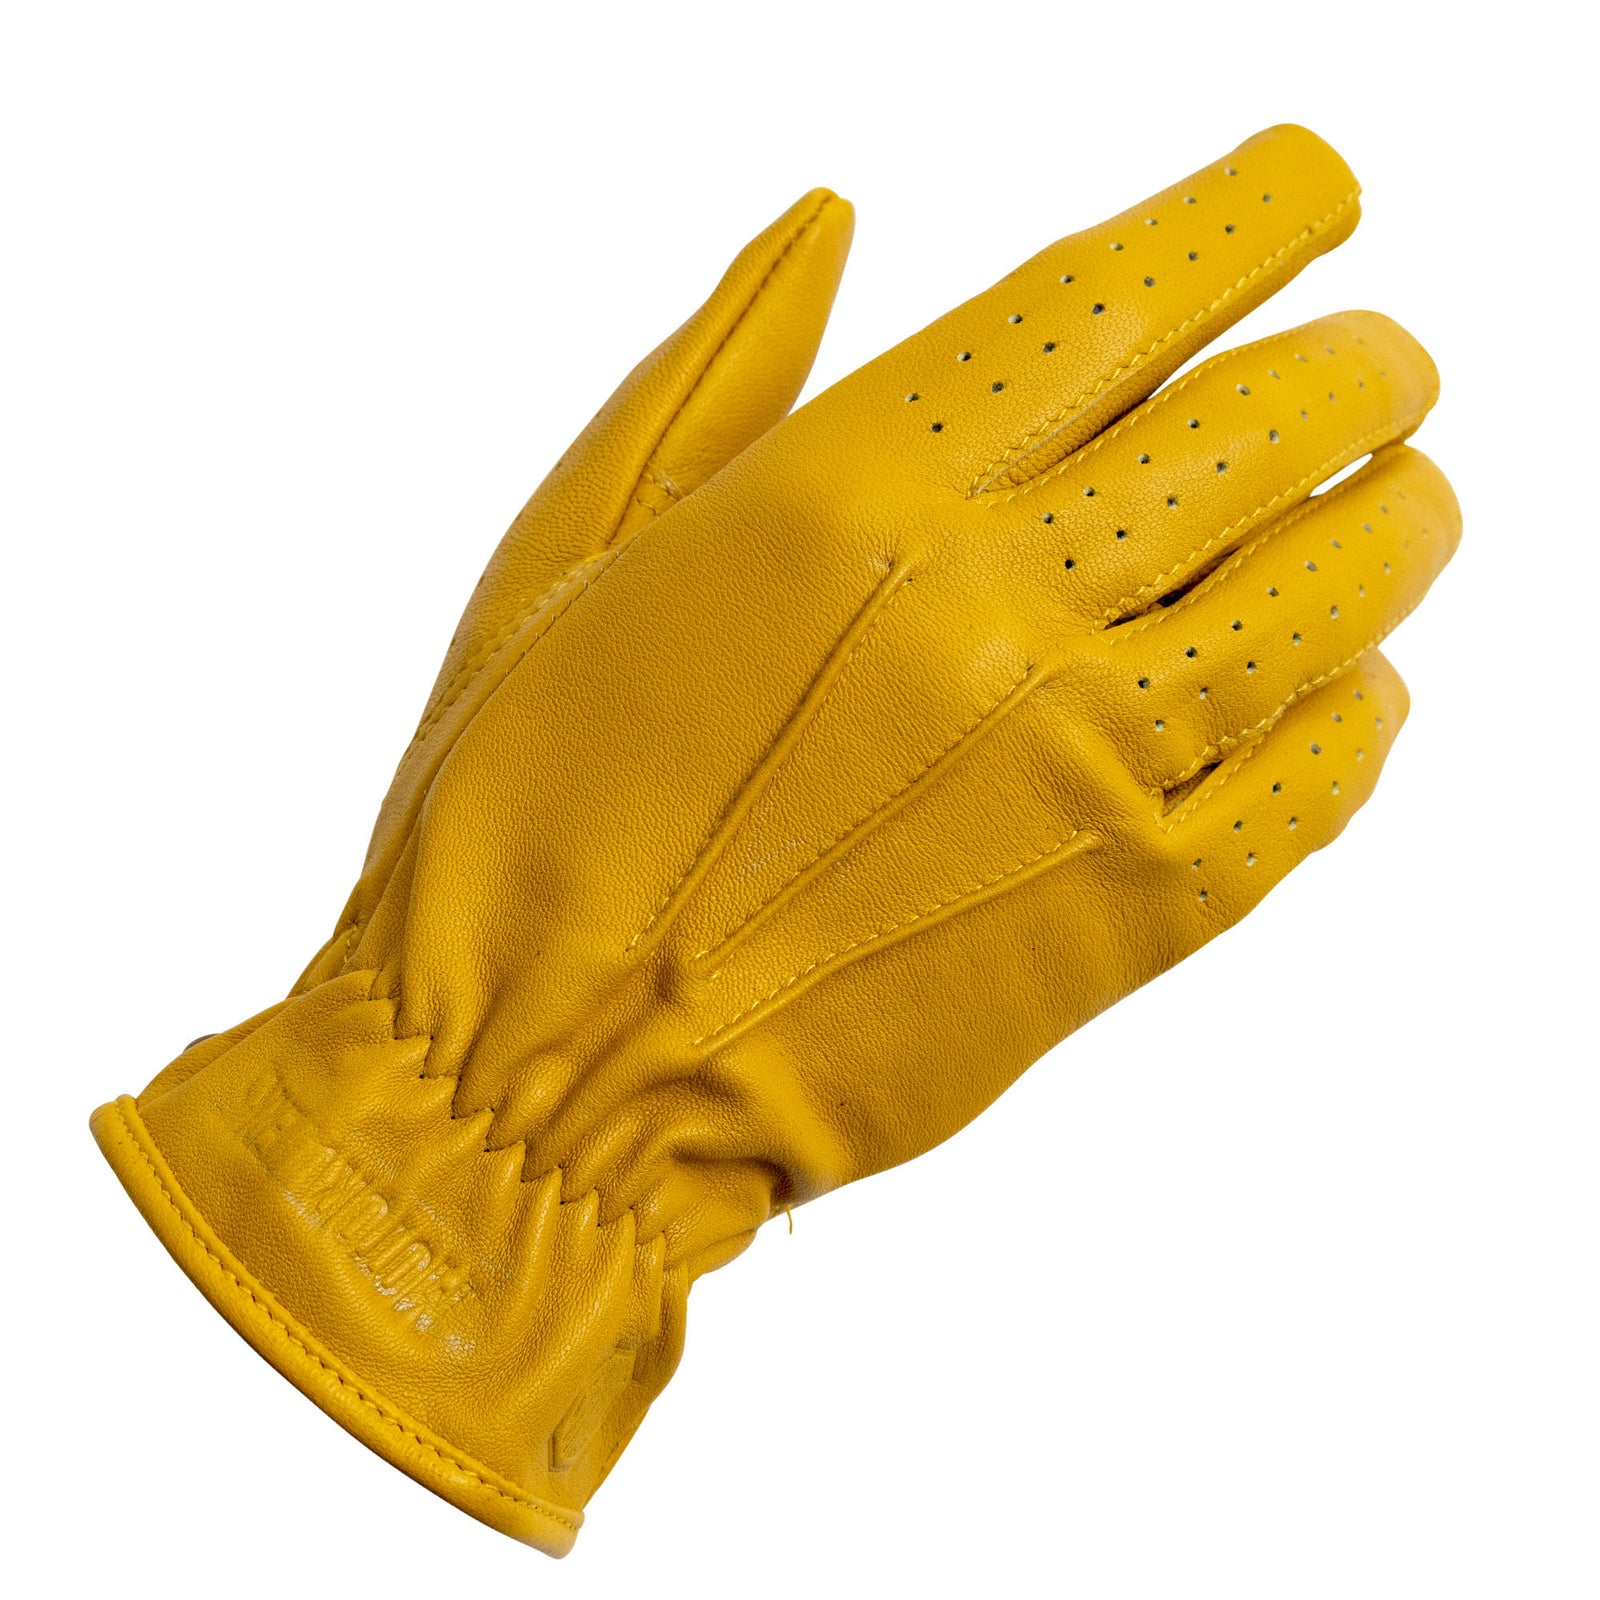 MW Rancher Glove Yellow